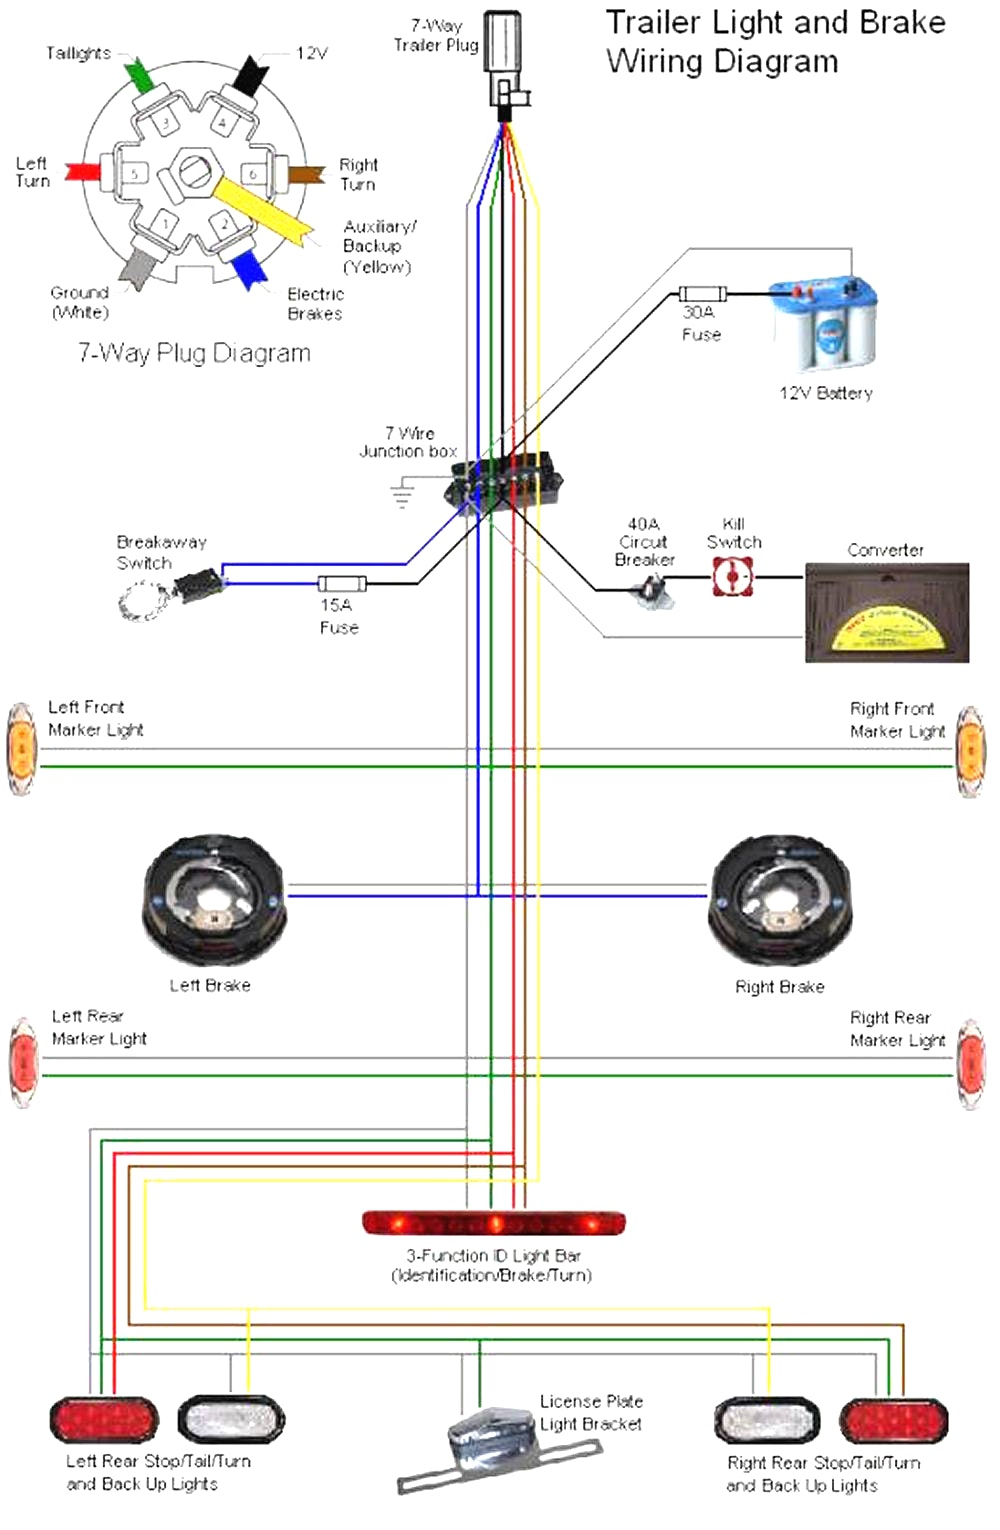 Wiring Diagram For Honeywell Thermostat T8411r Electric Trailer Brake Controller